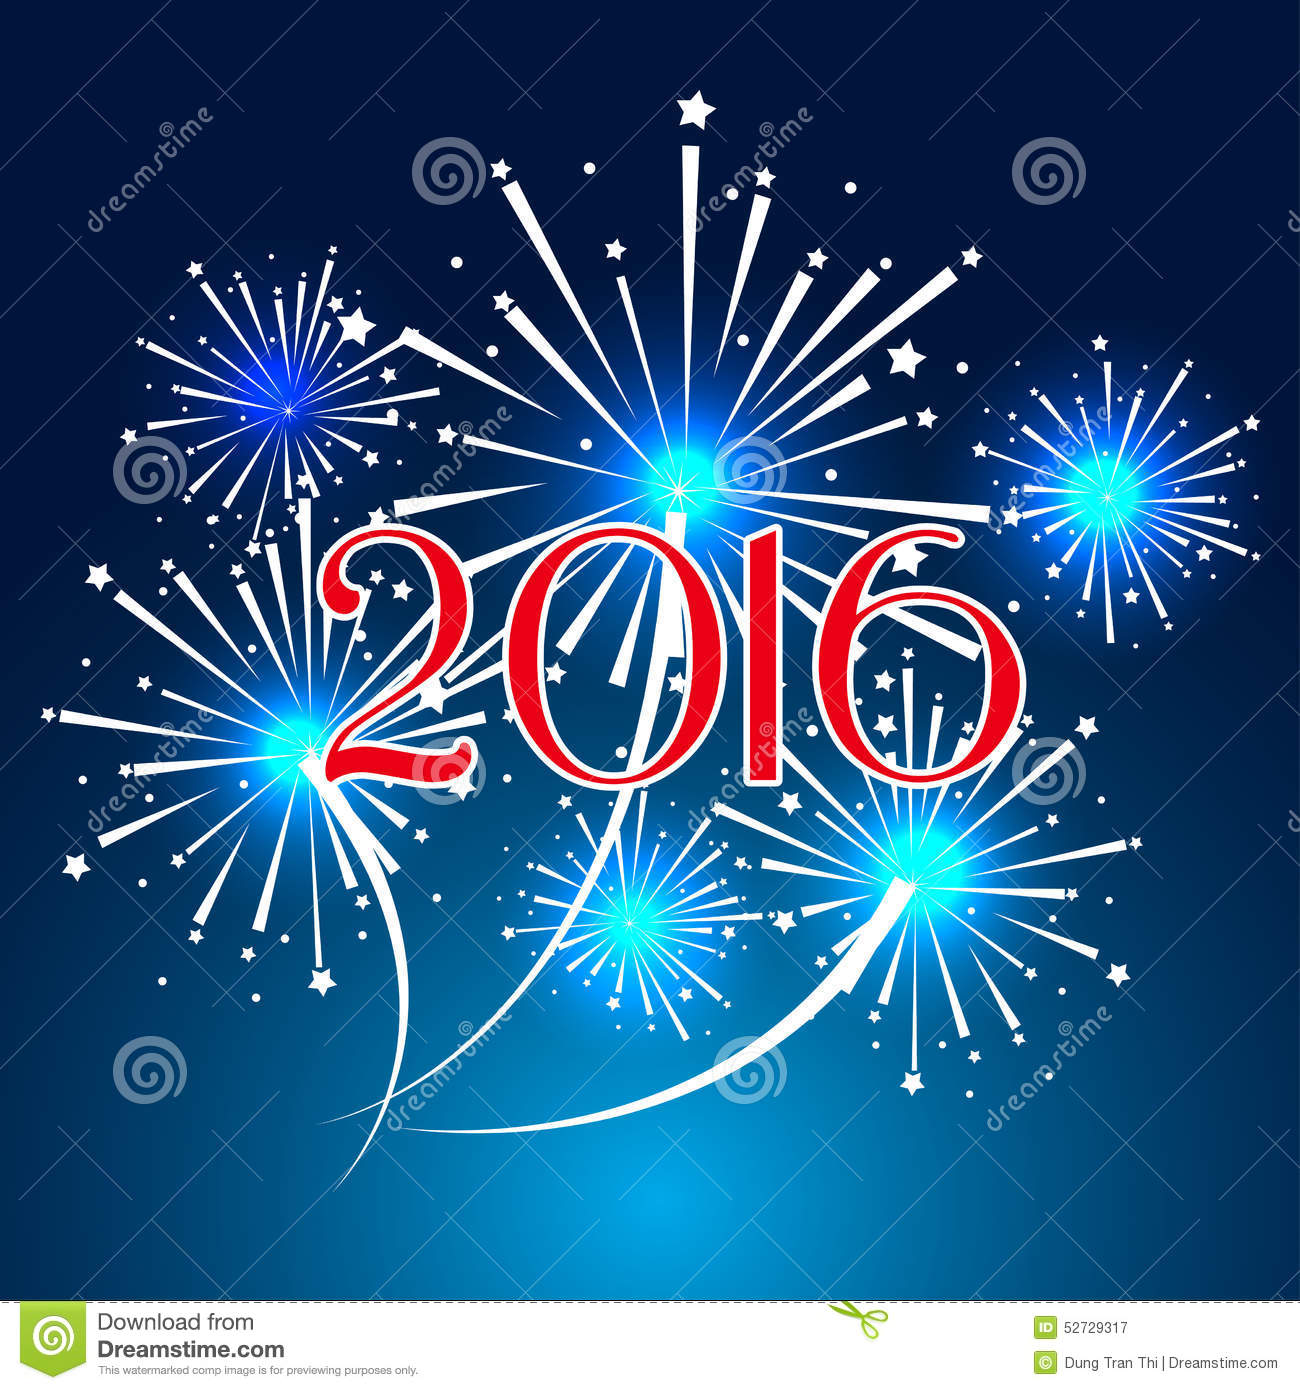 Happy new year 2016 with fireworks holiday background - Frases ano nuevo ...